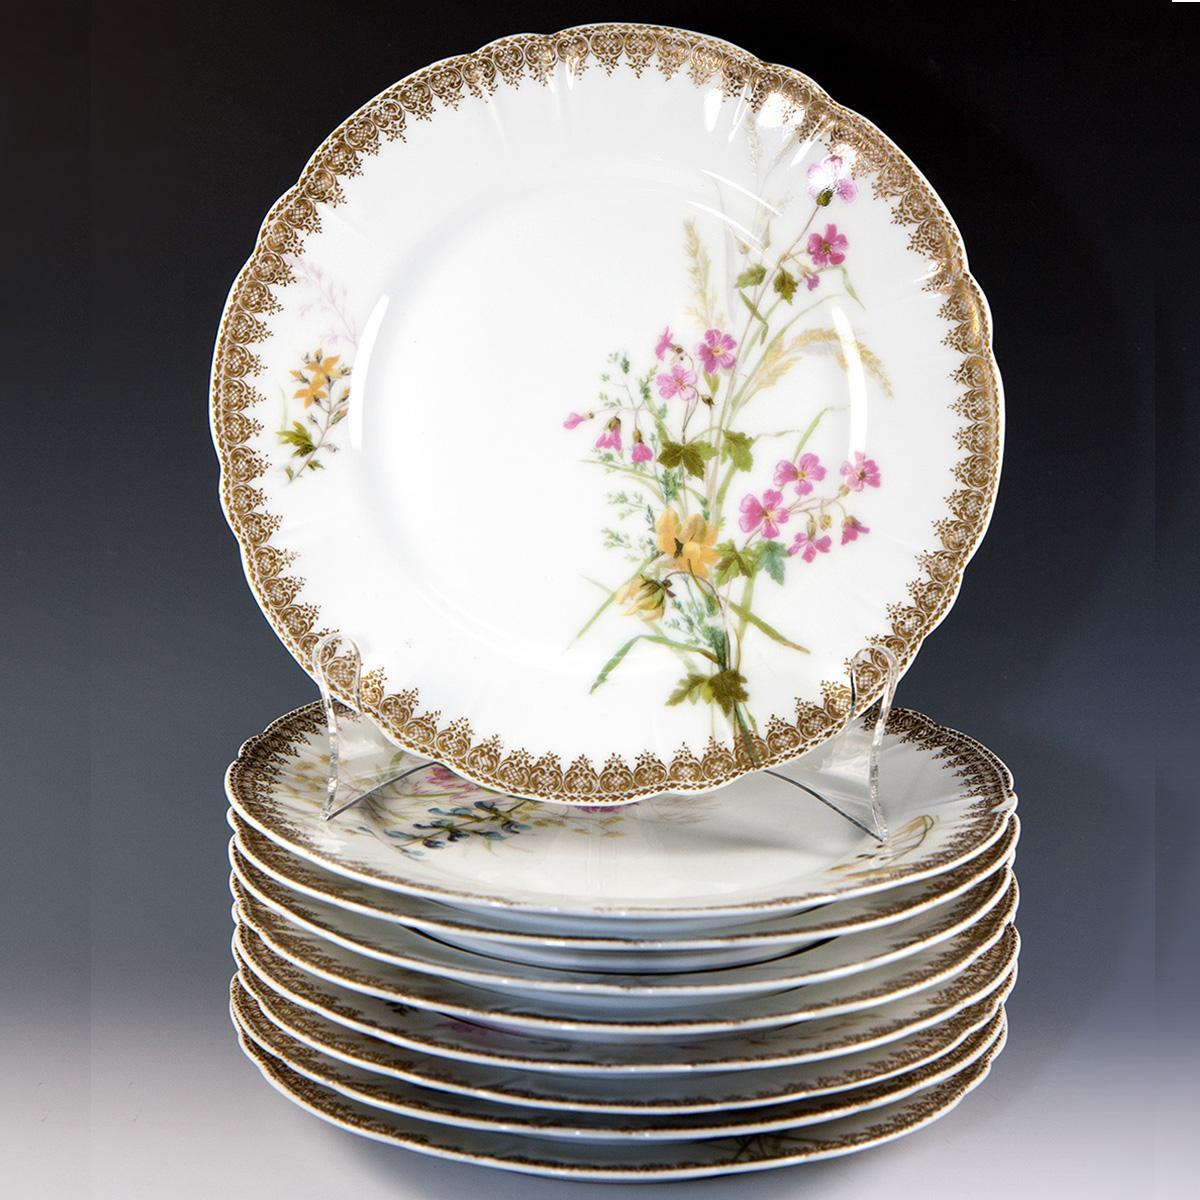 "Set of 9 Hand Painted Haviland Limoges Plates, Date Mark: 1888-1896, 8.5"" Diam."